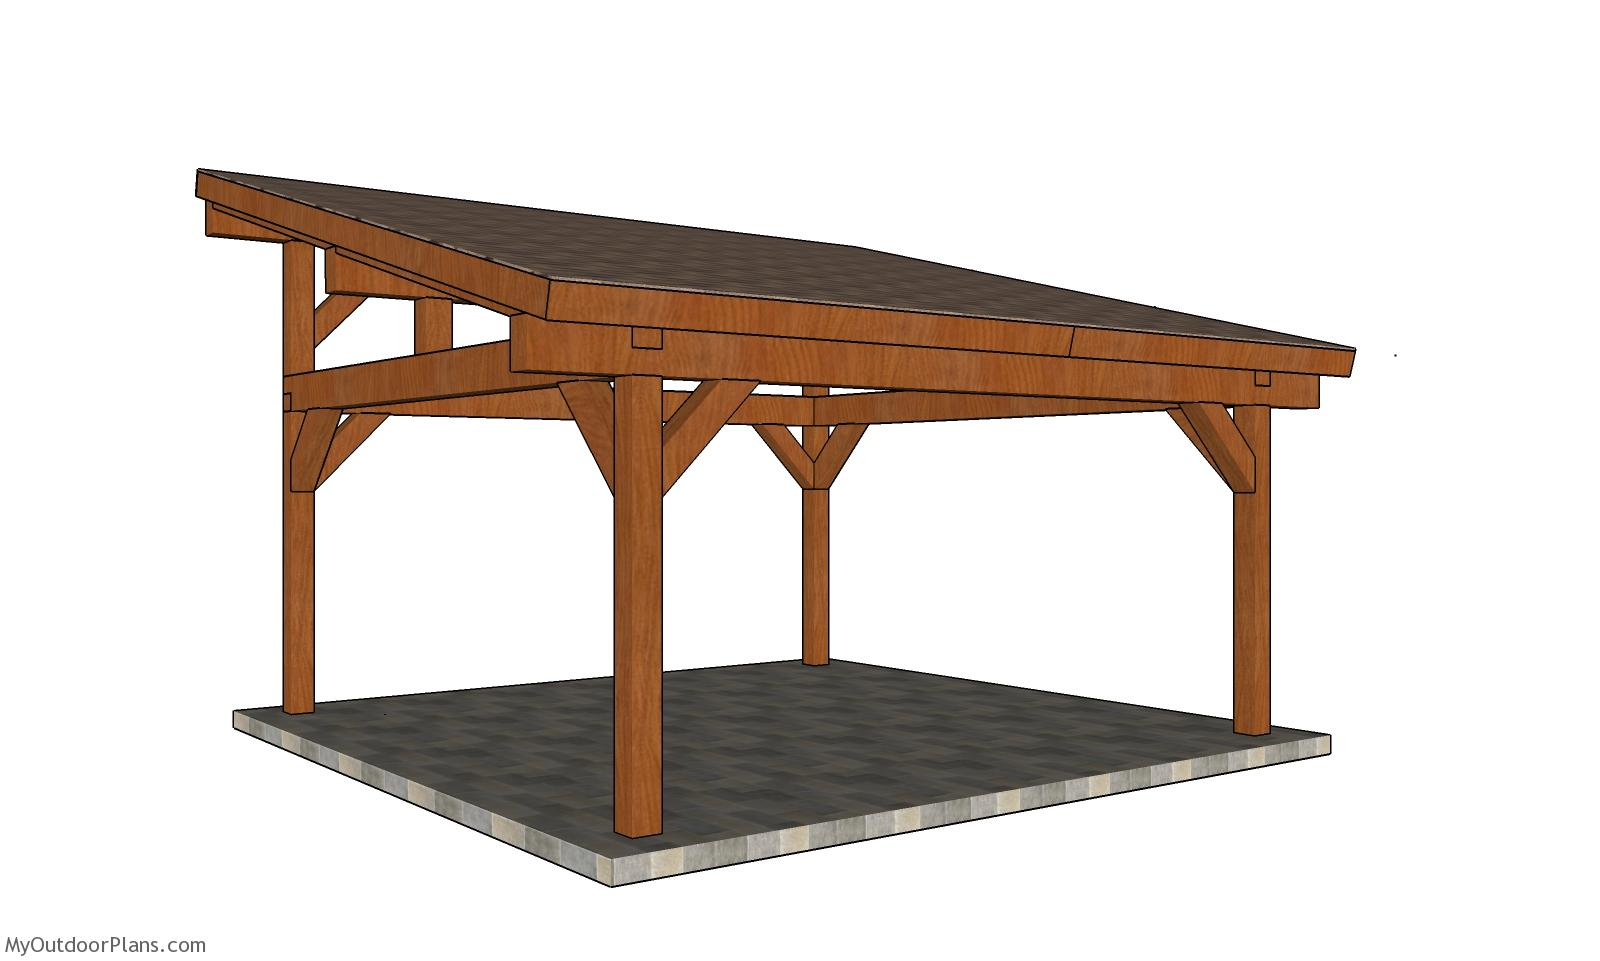 18x18 Lean to Pavilion Plans